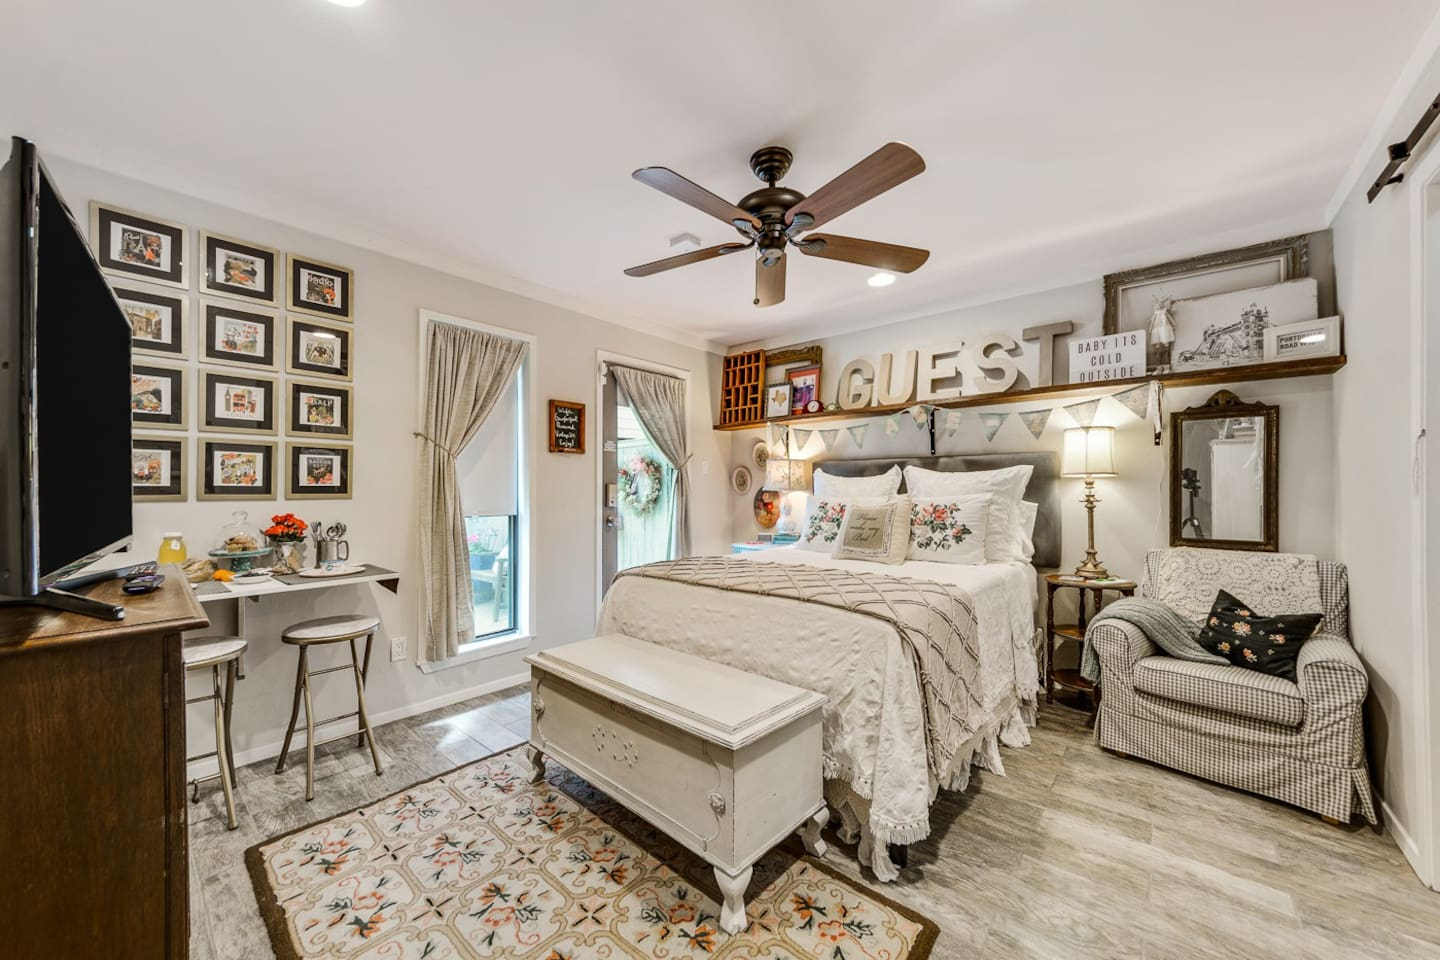 Private entrance with keyless entry and cozy queen bed.